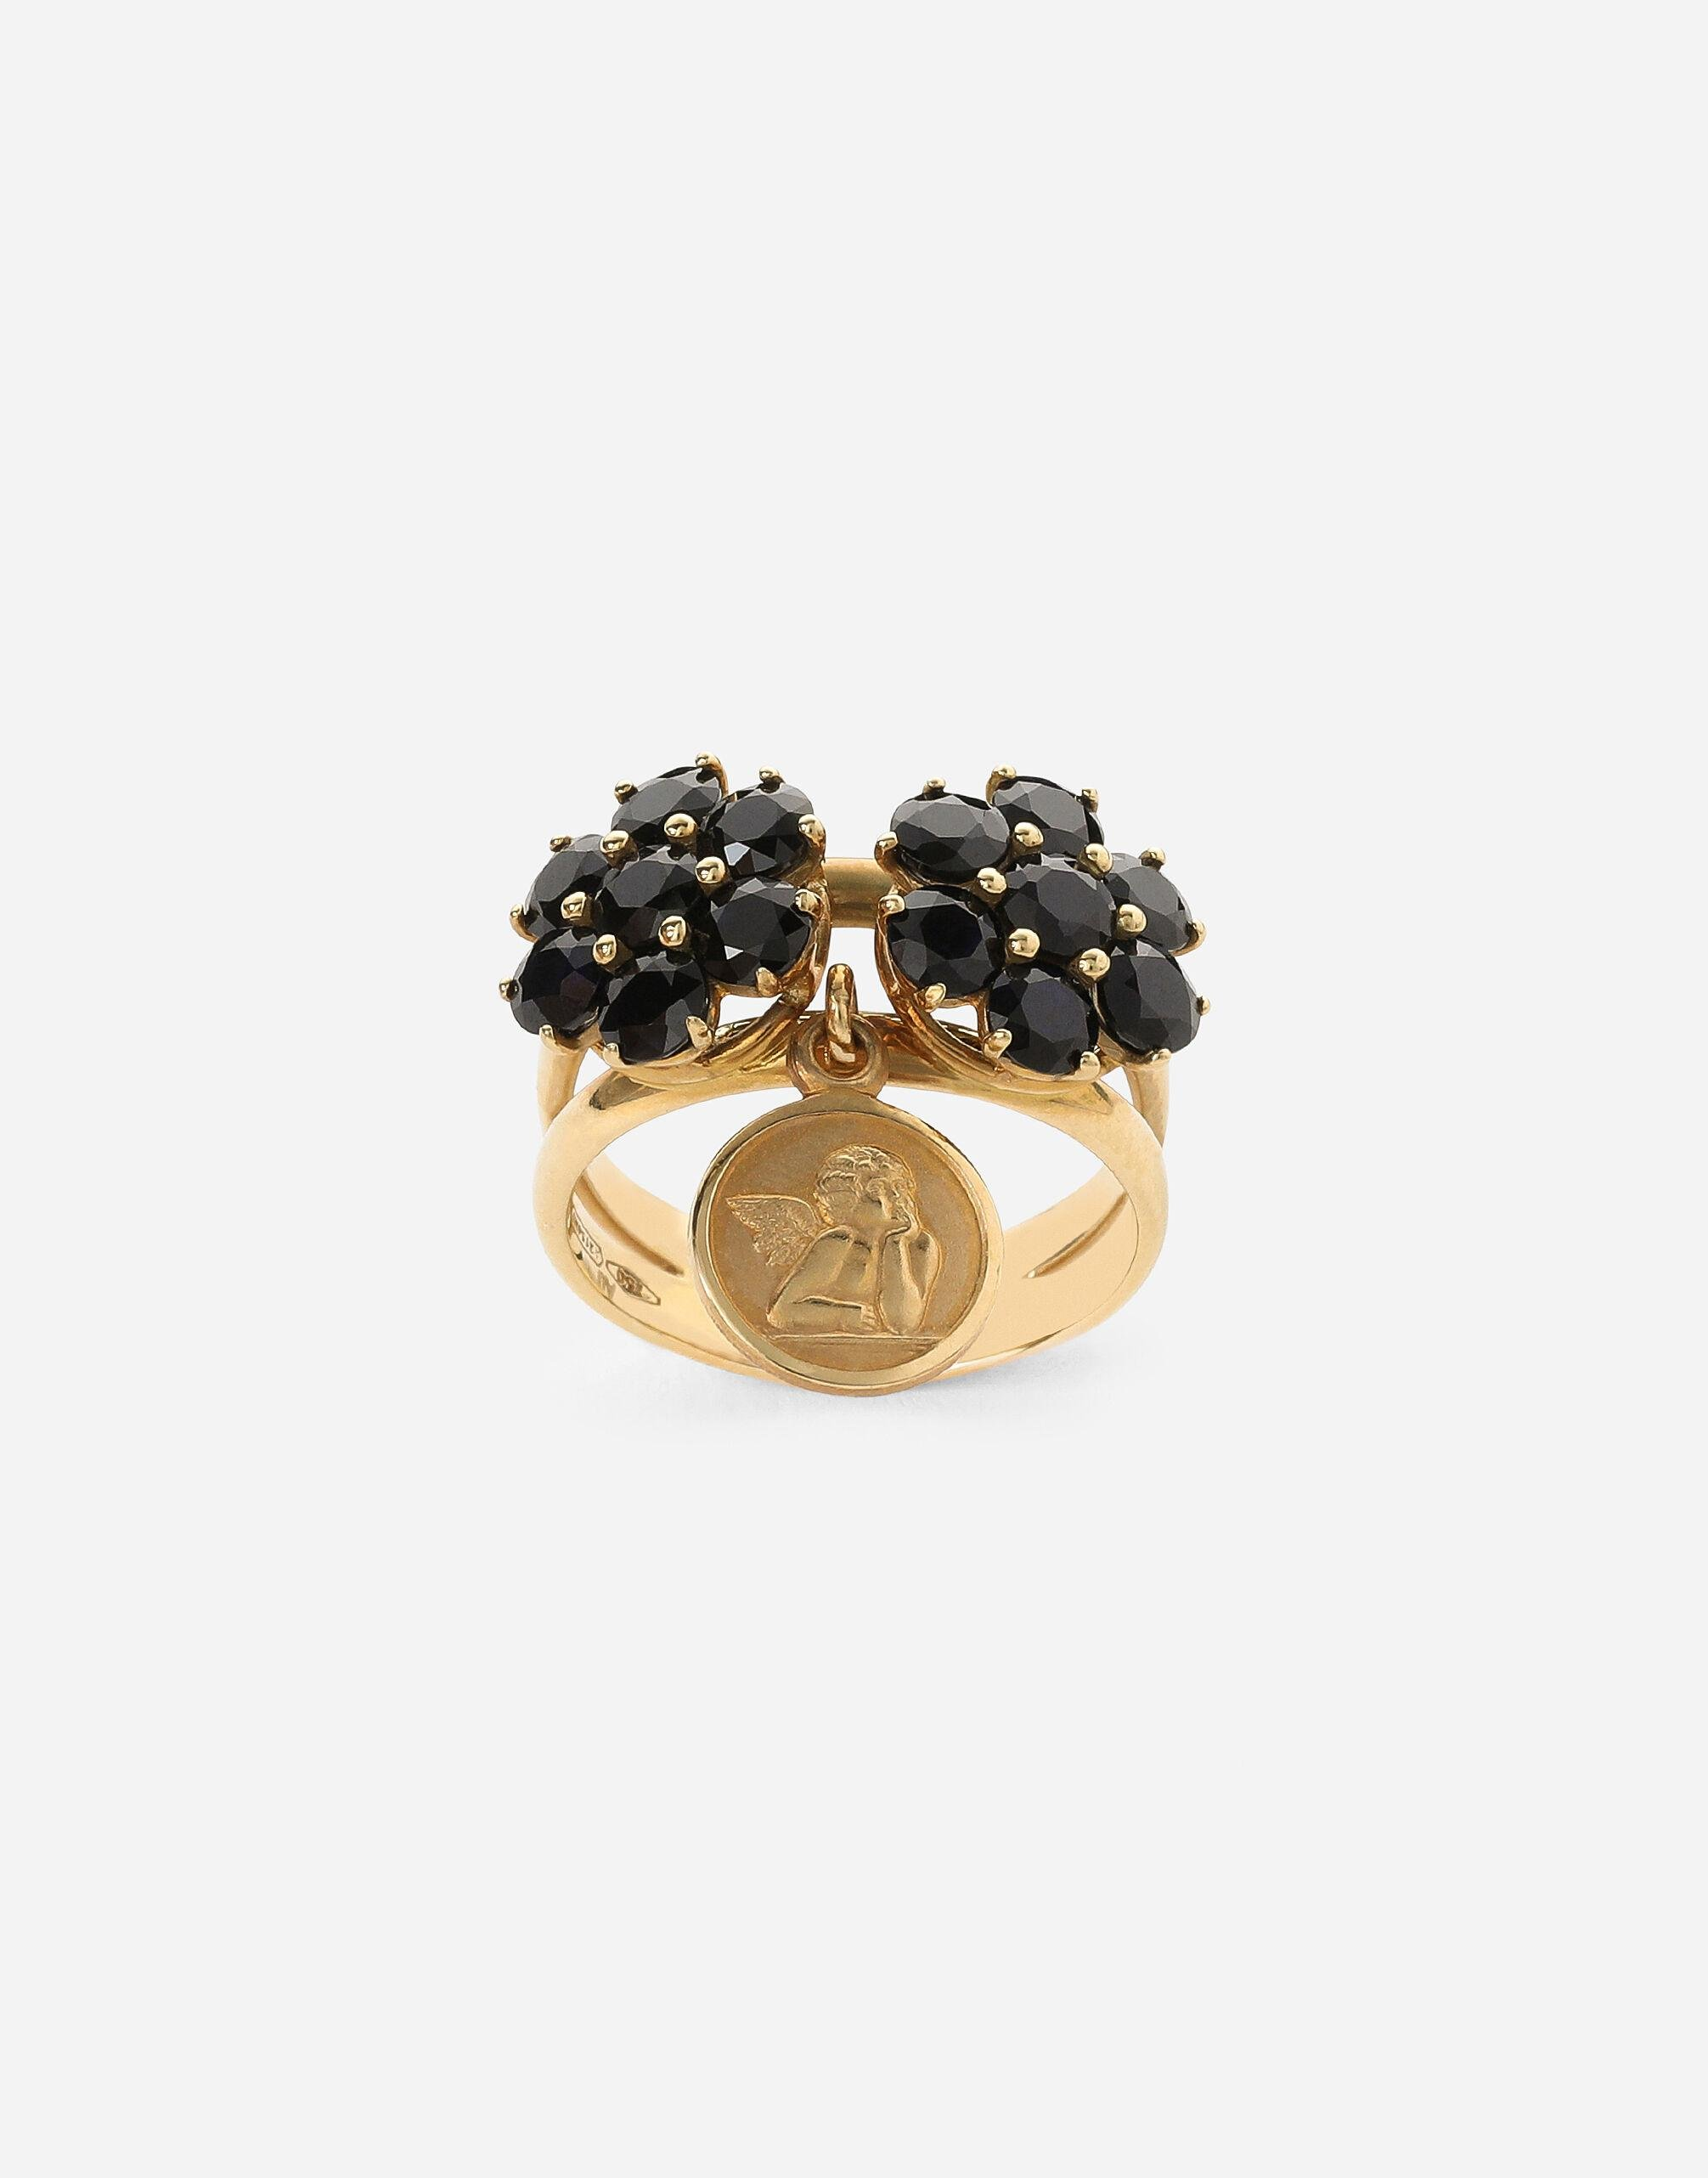 Family ring in yellow 18kt gold with black sapphires